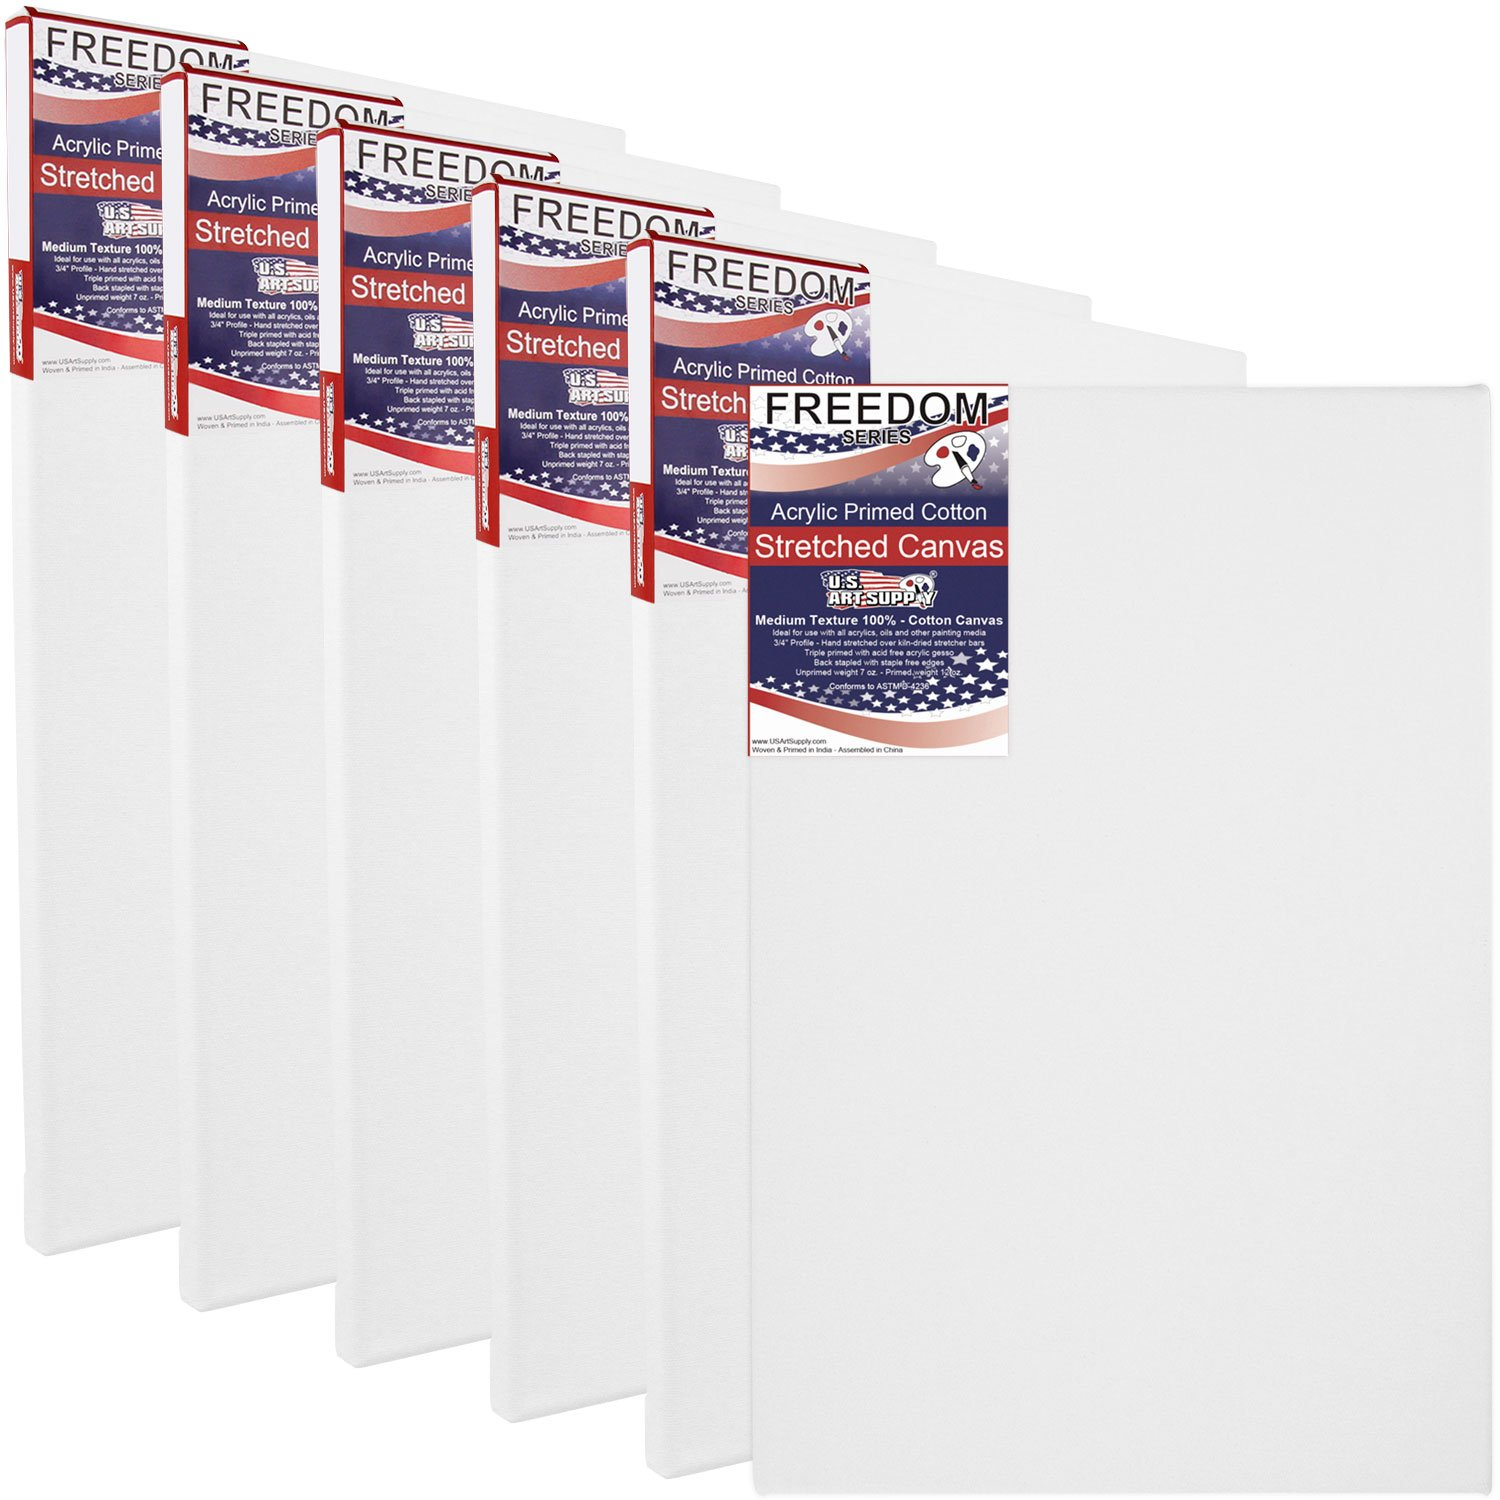 US Art Supply 24 X 36 inch Professional Quality Acid Free Stretched Canvas 6-Pack - 3/4 Profile 12 Ounce Primed Gesso - (1 Full Case of 6 Single Canvases) by US Art Supply (Image #1)